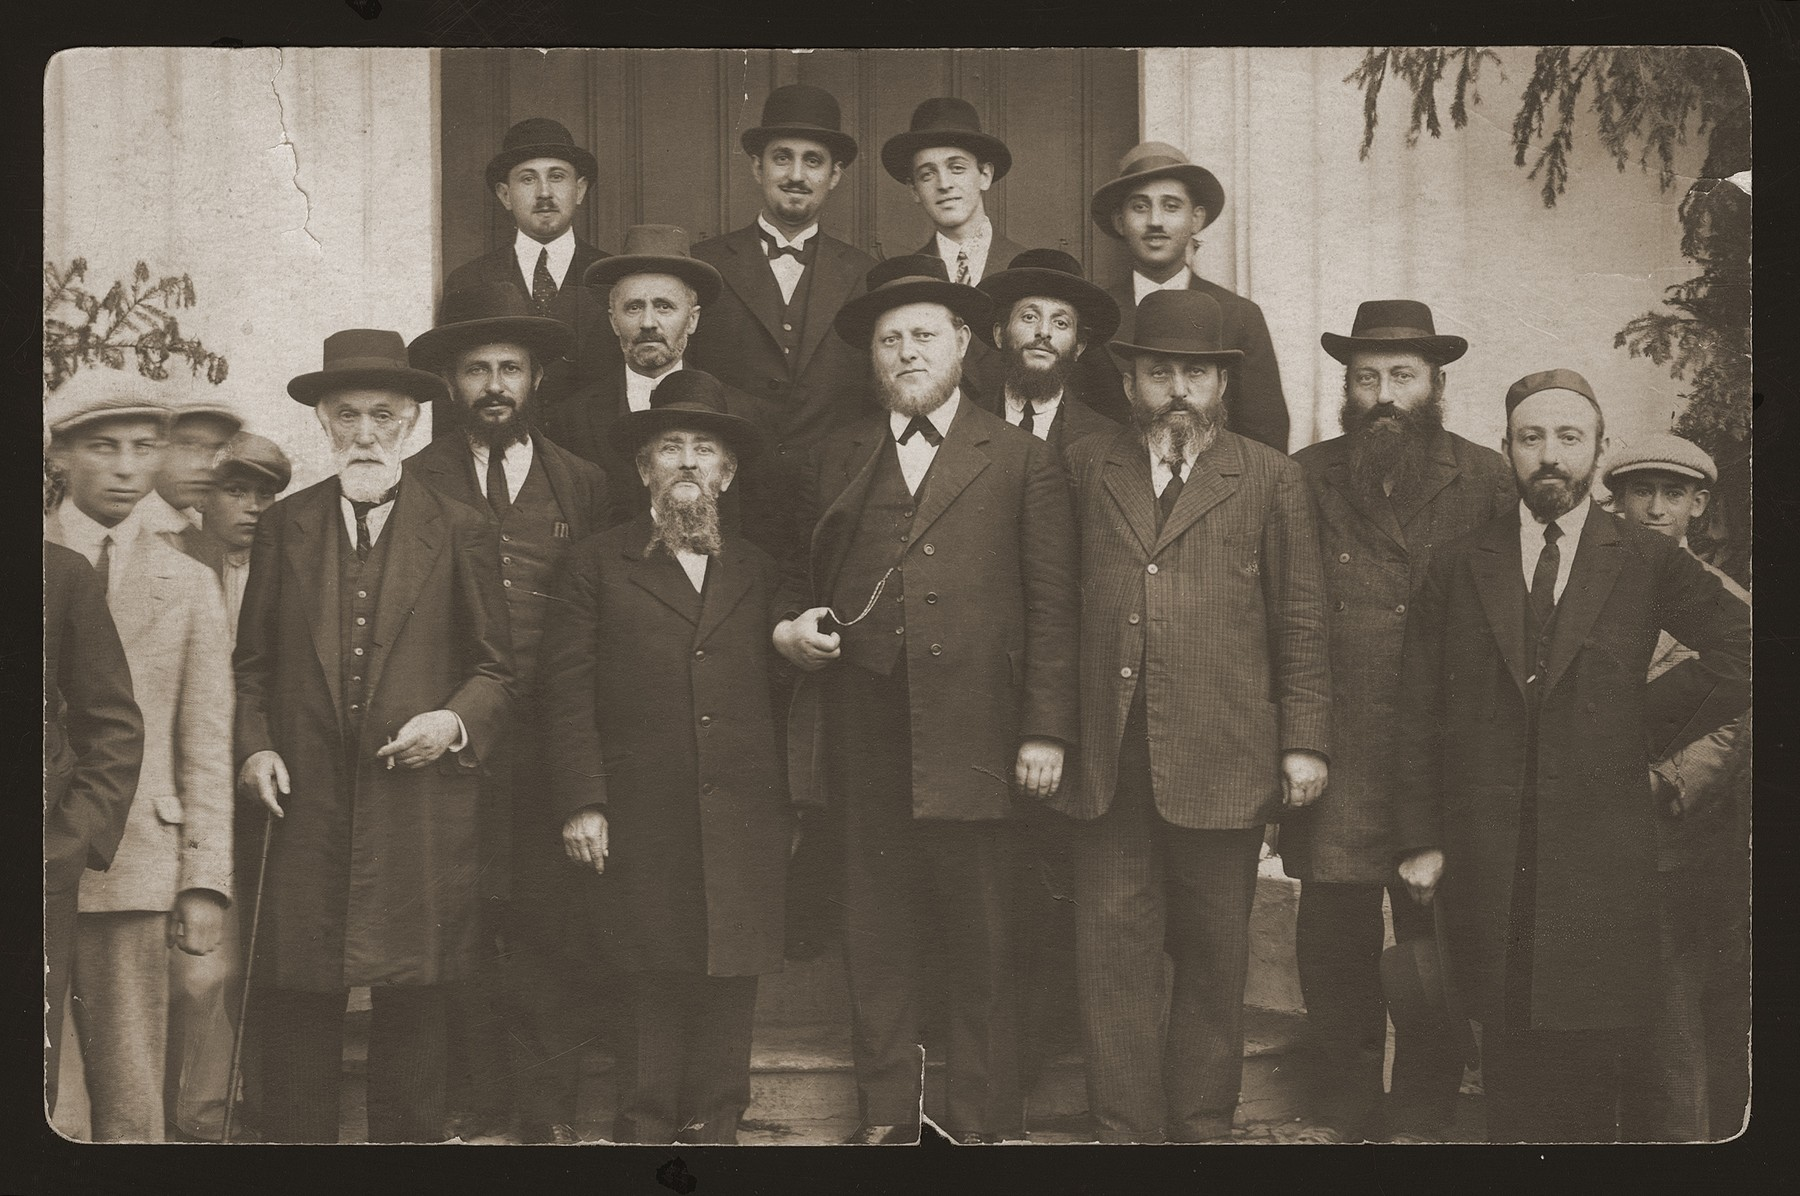 Rabbis and cantors gathered in Senica.    Third from the left on the front row is Cantor Klein, originally from Ungvar, Slovakia.  Behind him is his son-in-law, Bernat Berkovic, the cantor of Senica, and husband of Regina Klein.  Behind him (second from the left) is his son-in-law, Eugene Goldberger, chief cantor of Troppau, Moravia.